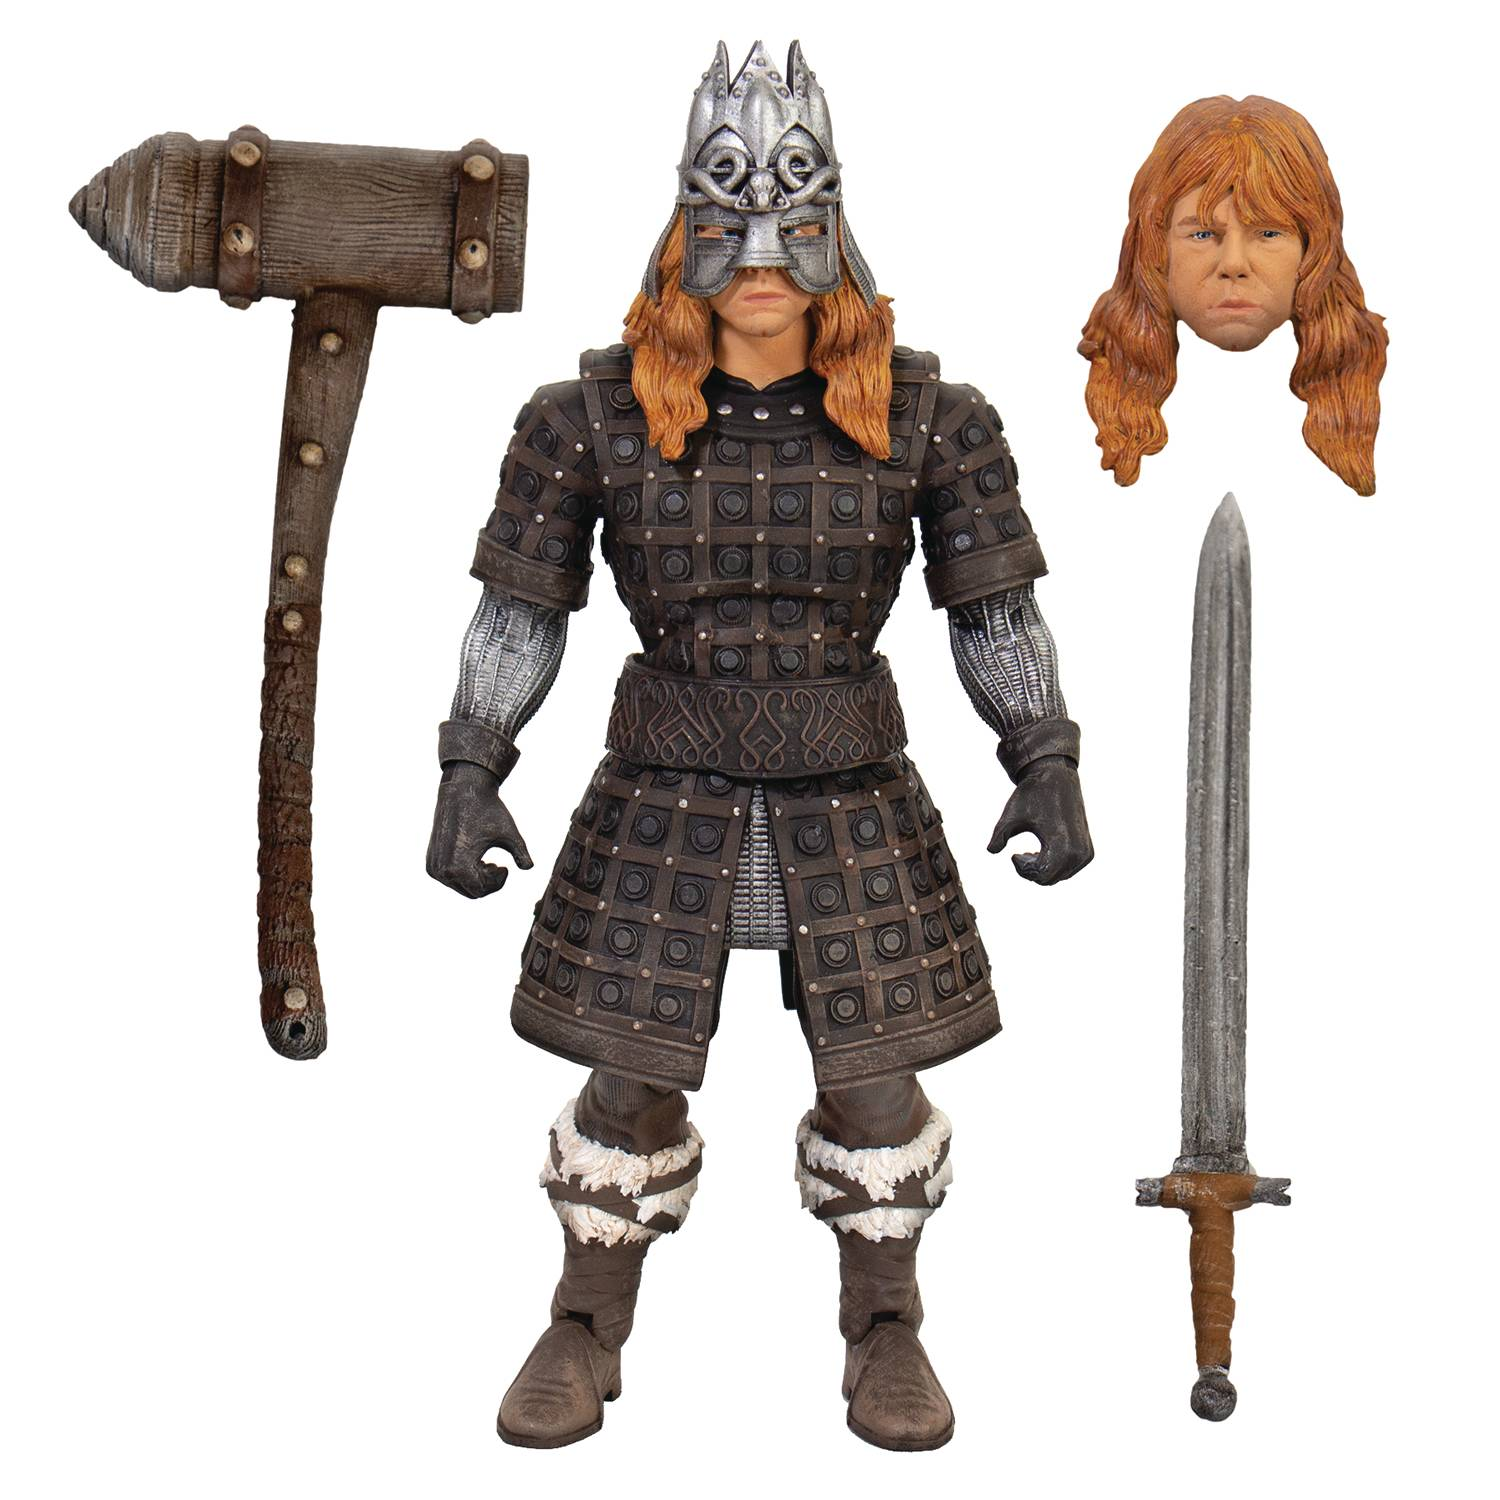 CONAN THE BARBARIAN ULTIMATES WV1 THORGRIM AF